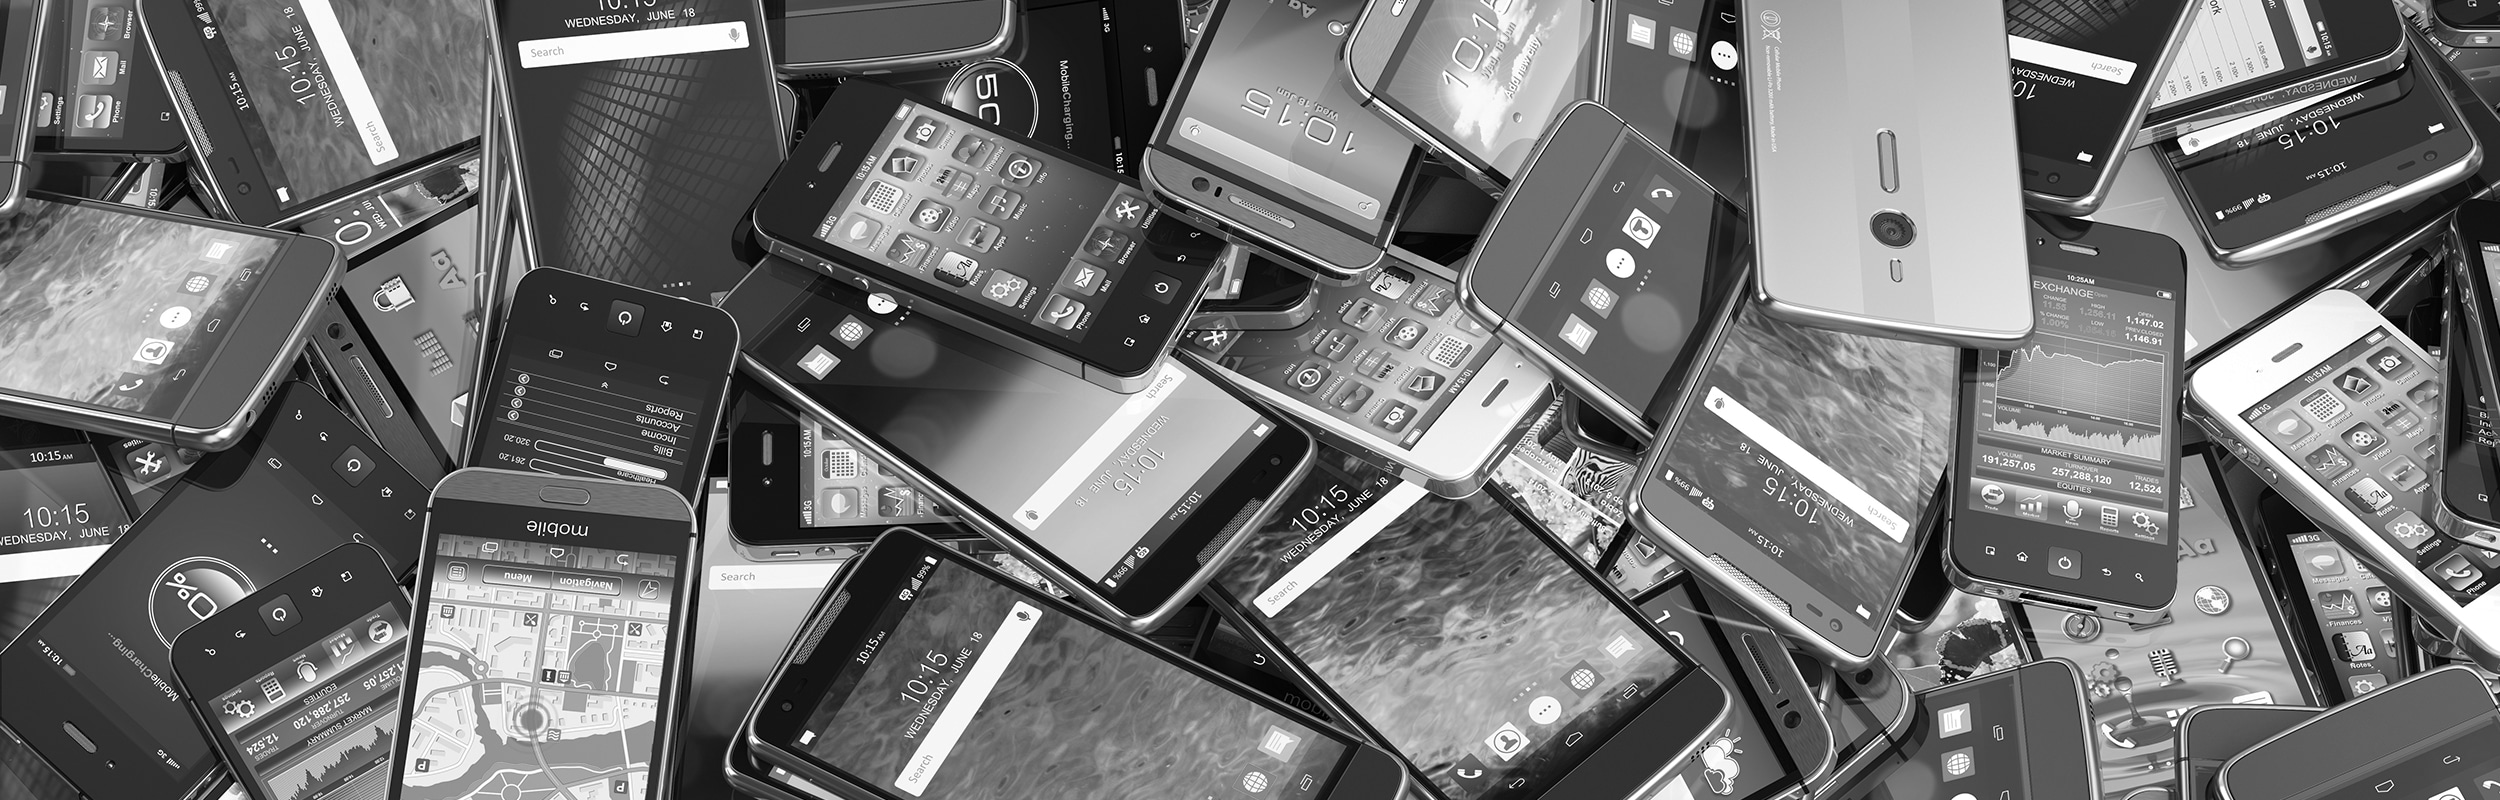 Big pile of cell phones